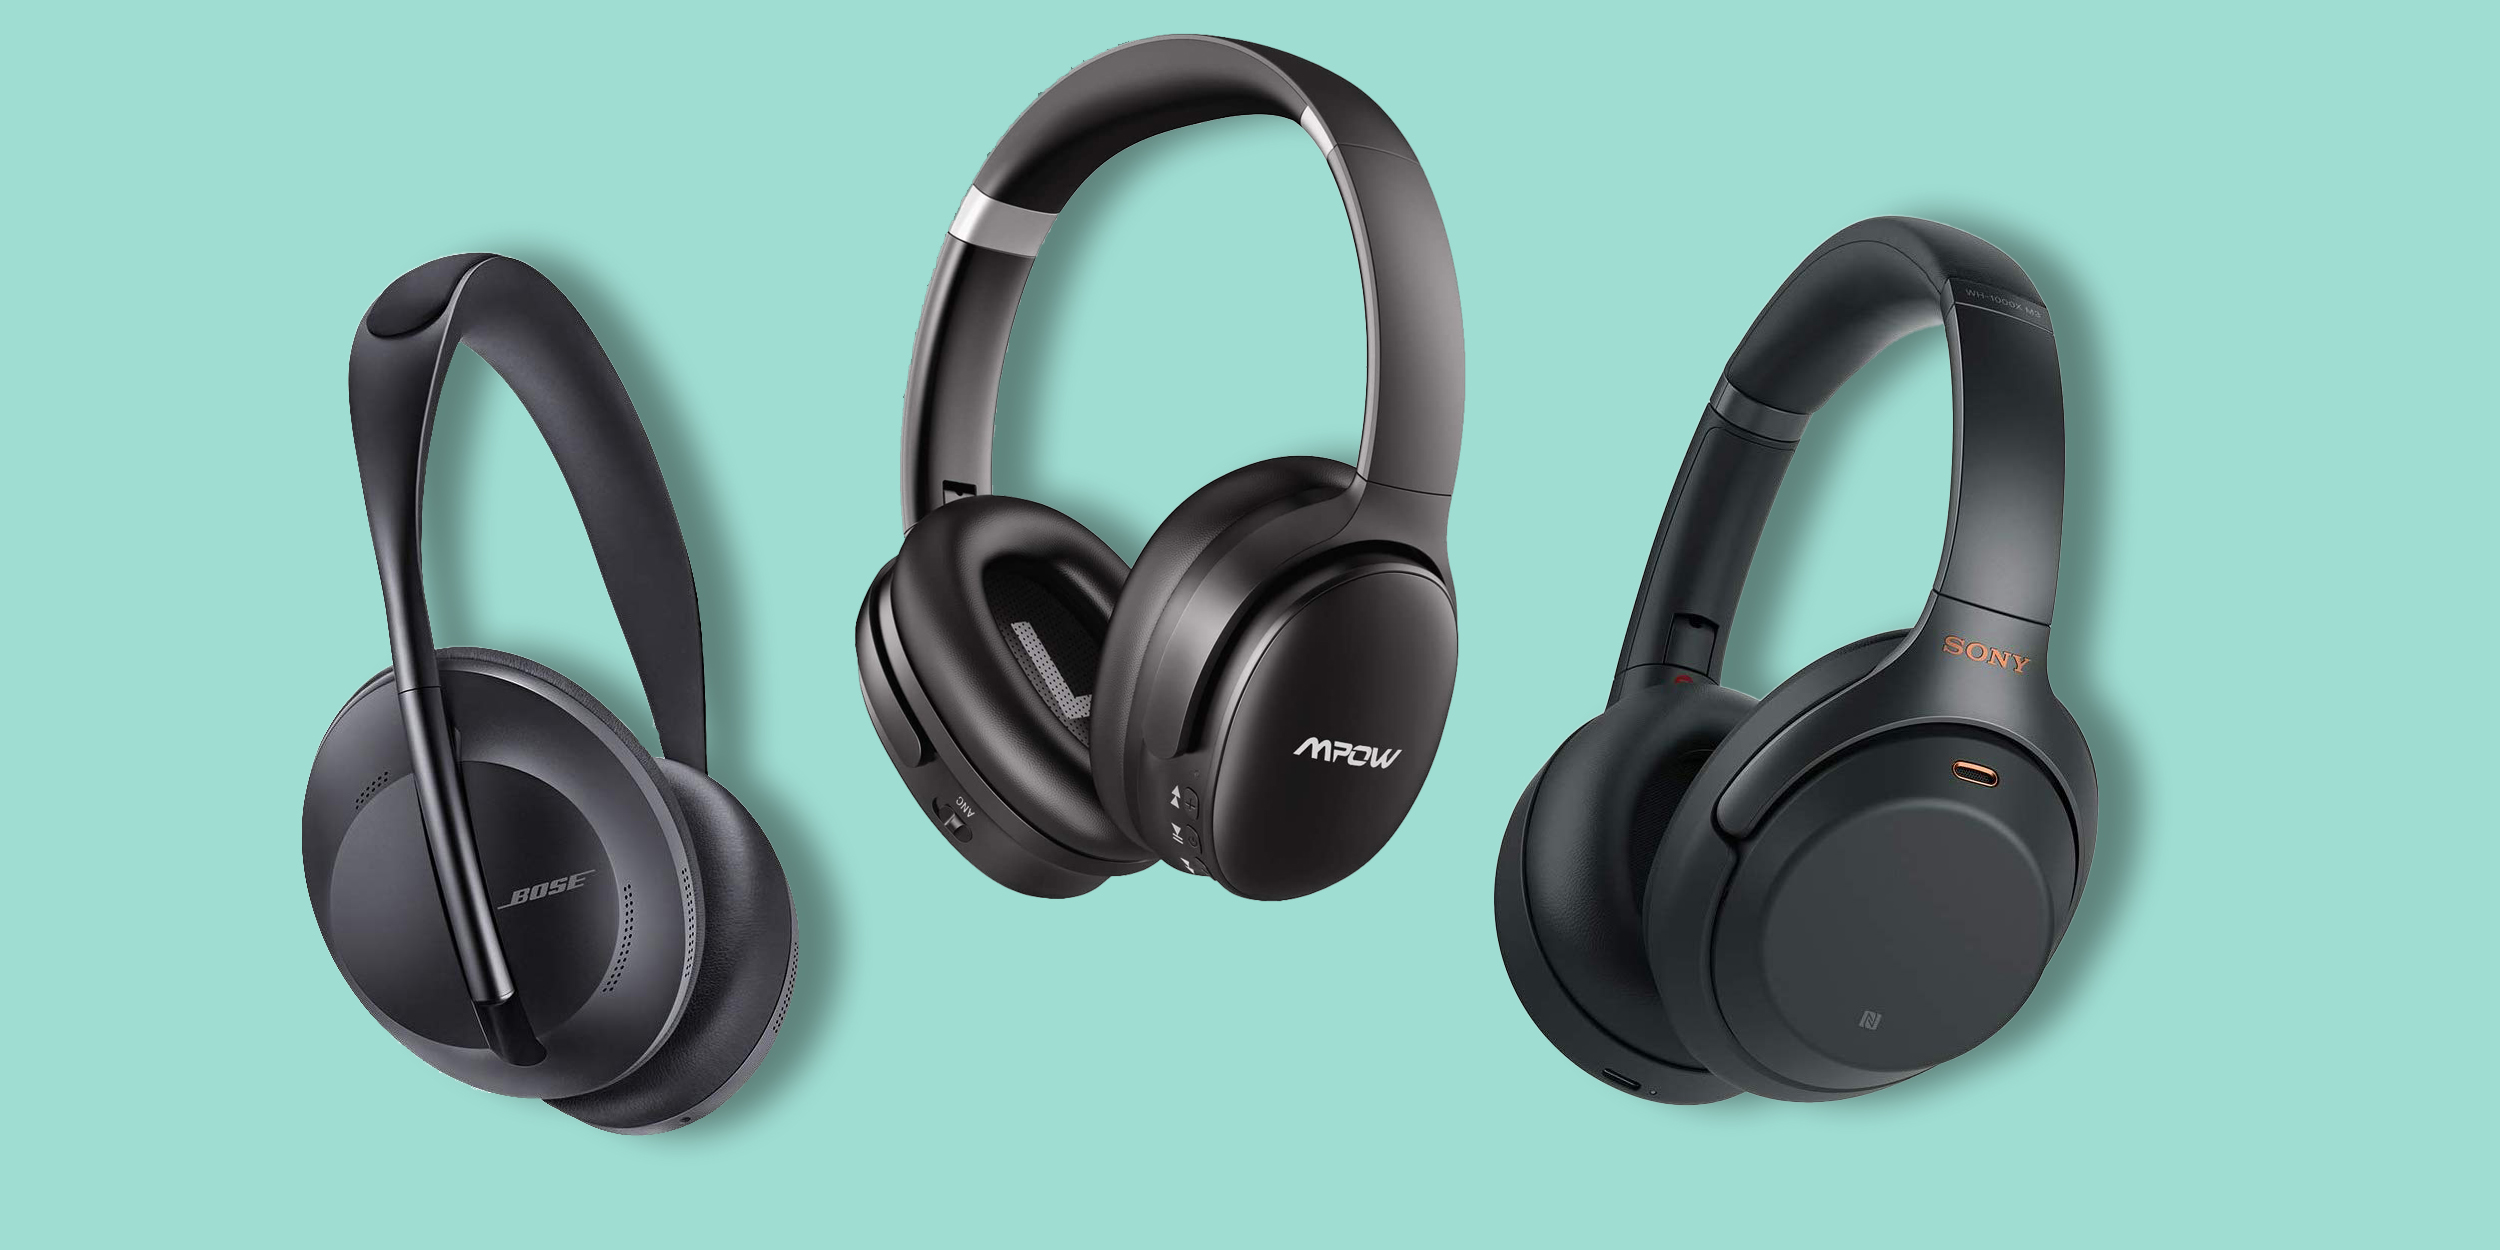 Pair of Noise-Canceling Headphones: